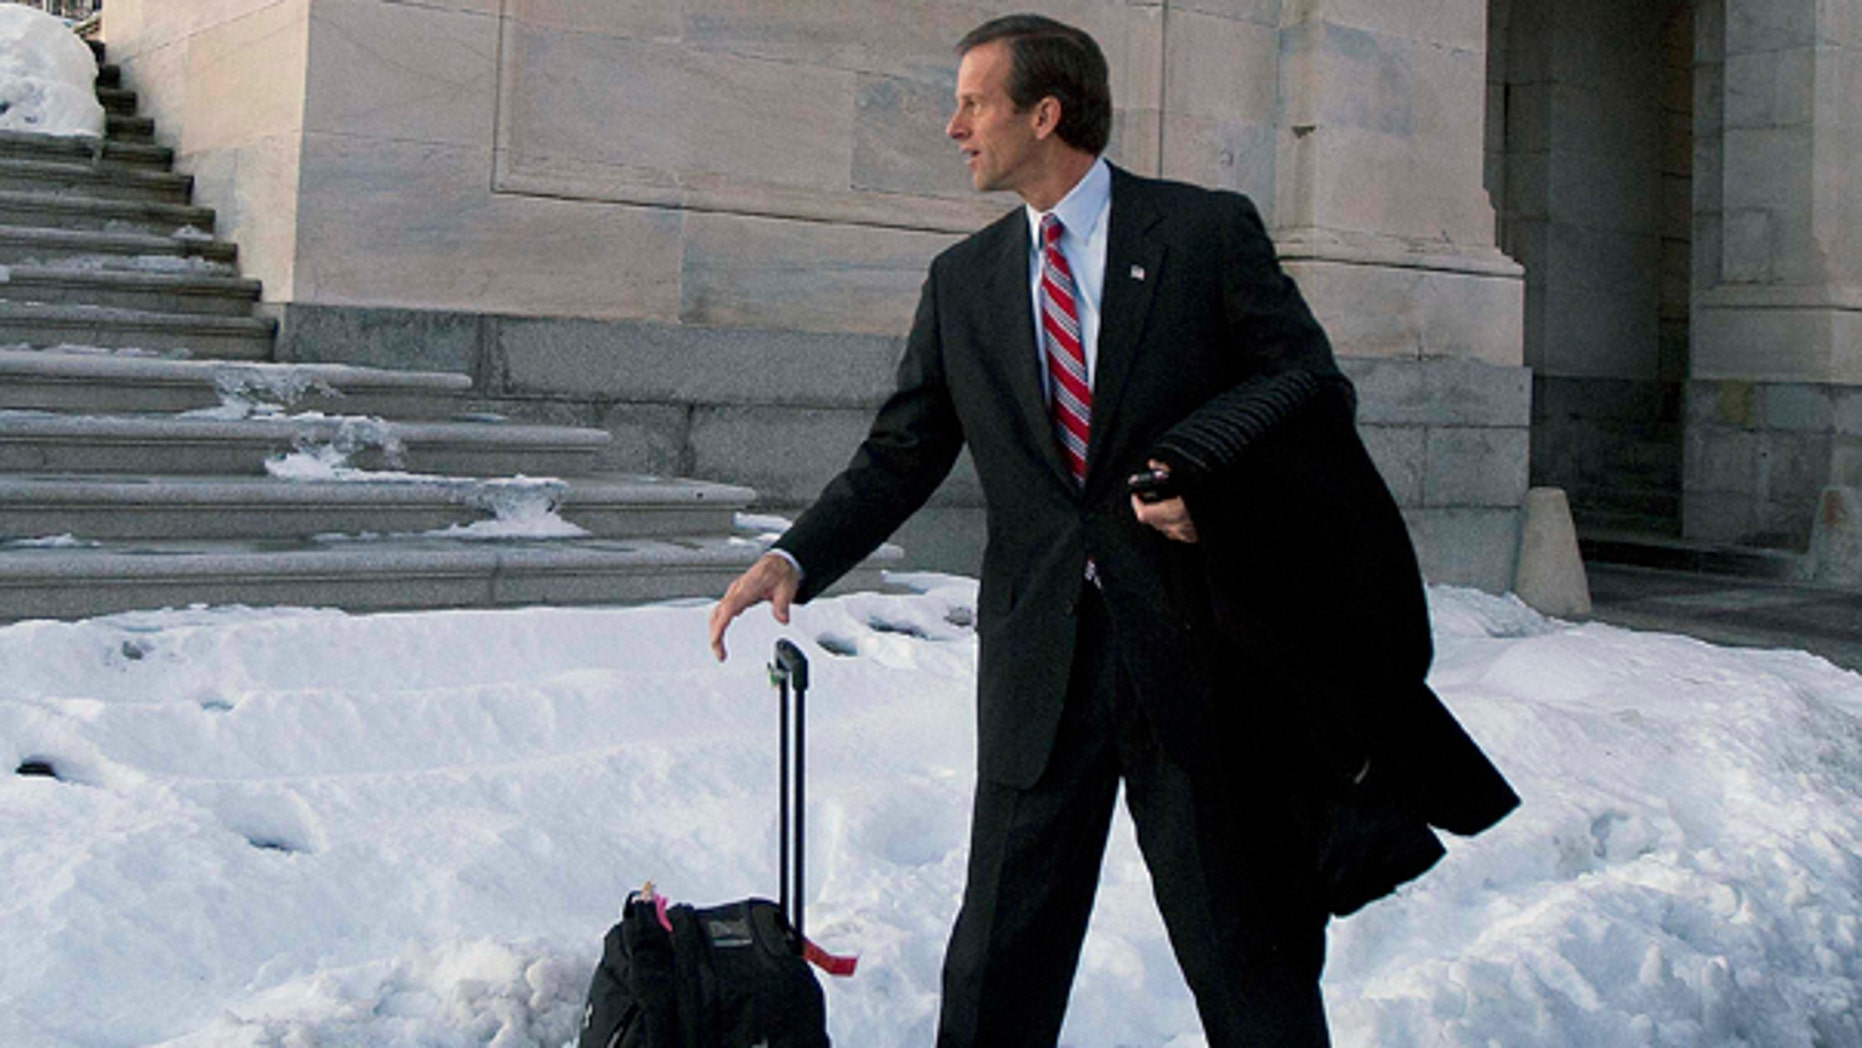 Thursday: Sen. John Thune, R-S.D., prepares to depart Washington for a winter recess, but Republicans have vowed to gin up opposition to the Senate health insurance overhaul during Congress' winter break. (AP Photo)